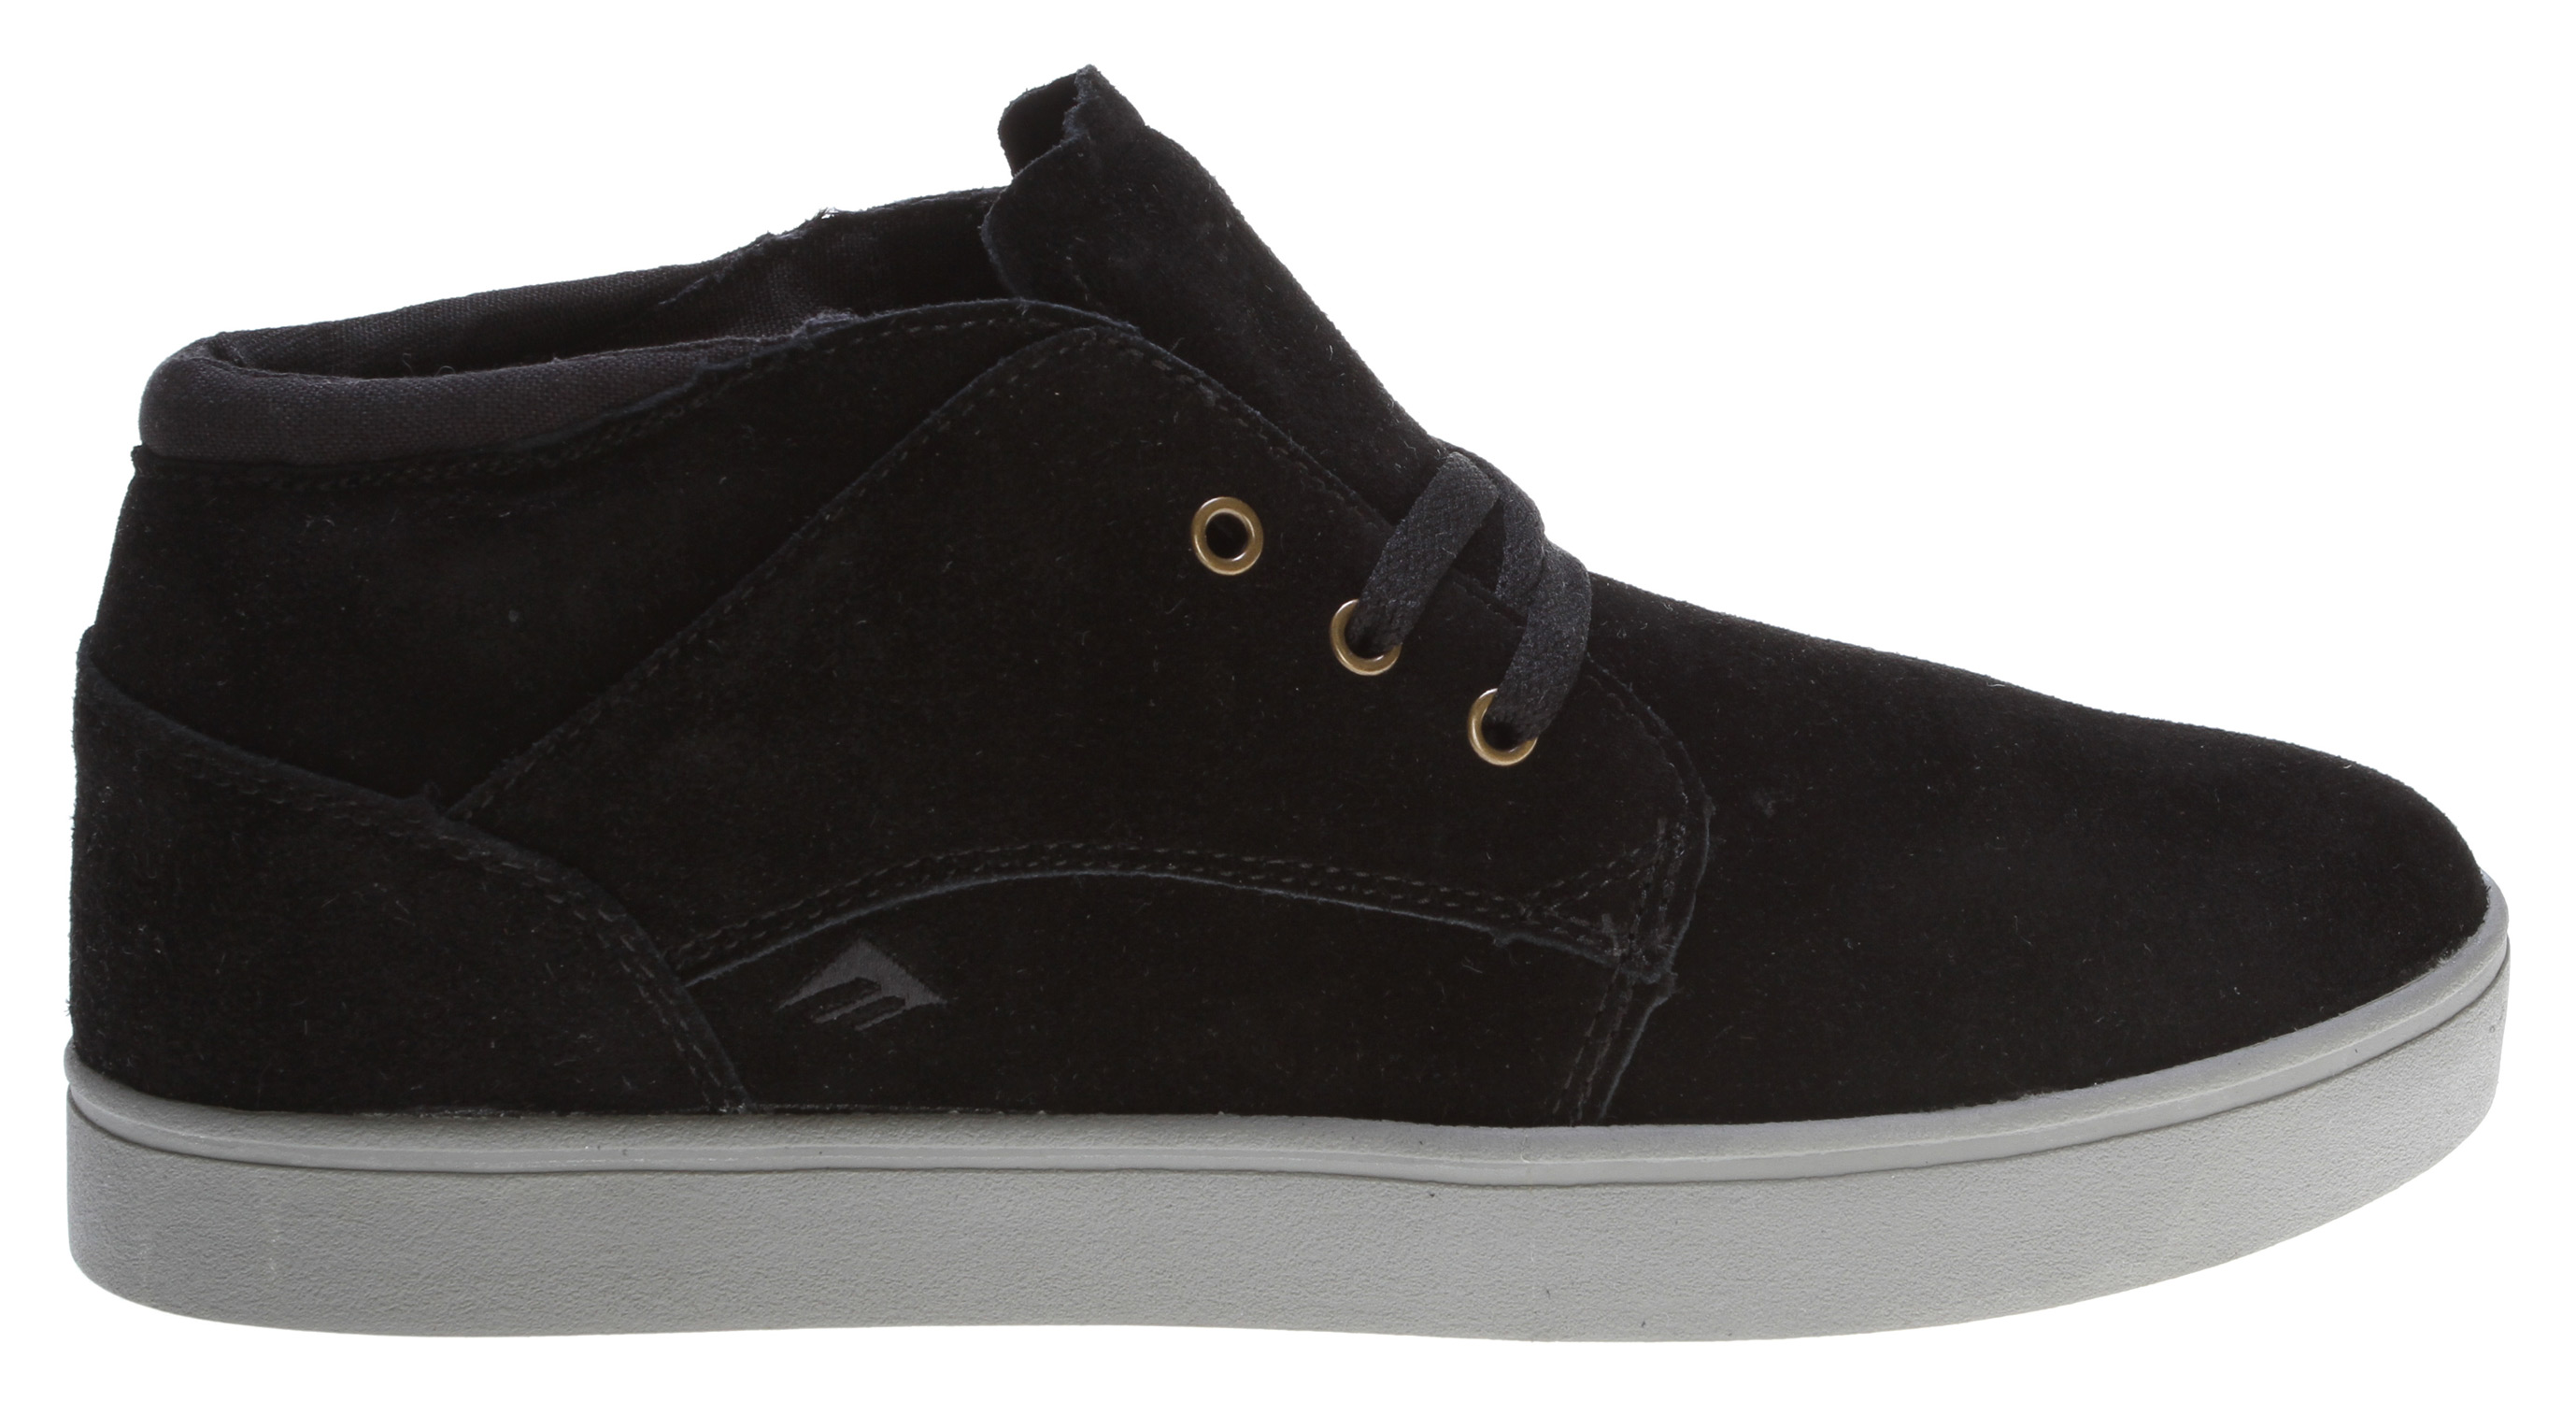 Skateboard Emerica The Situation Skate Shoes - $47.95